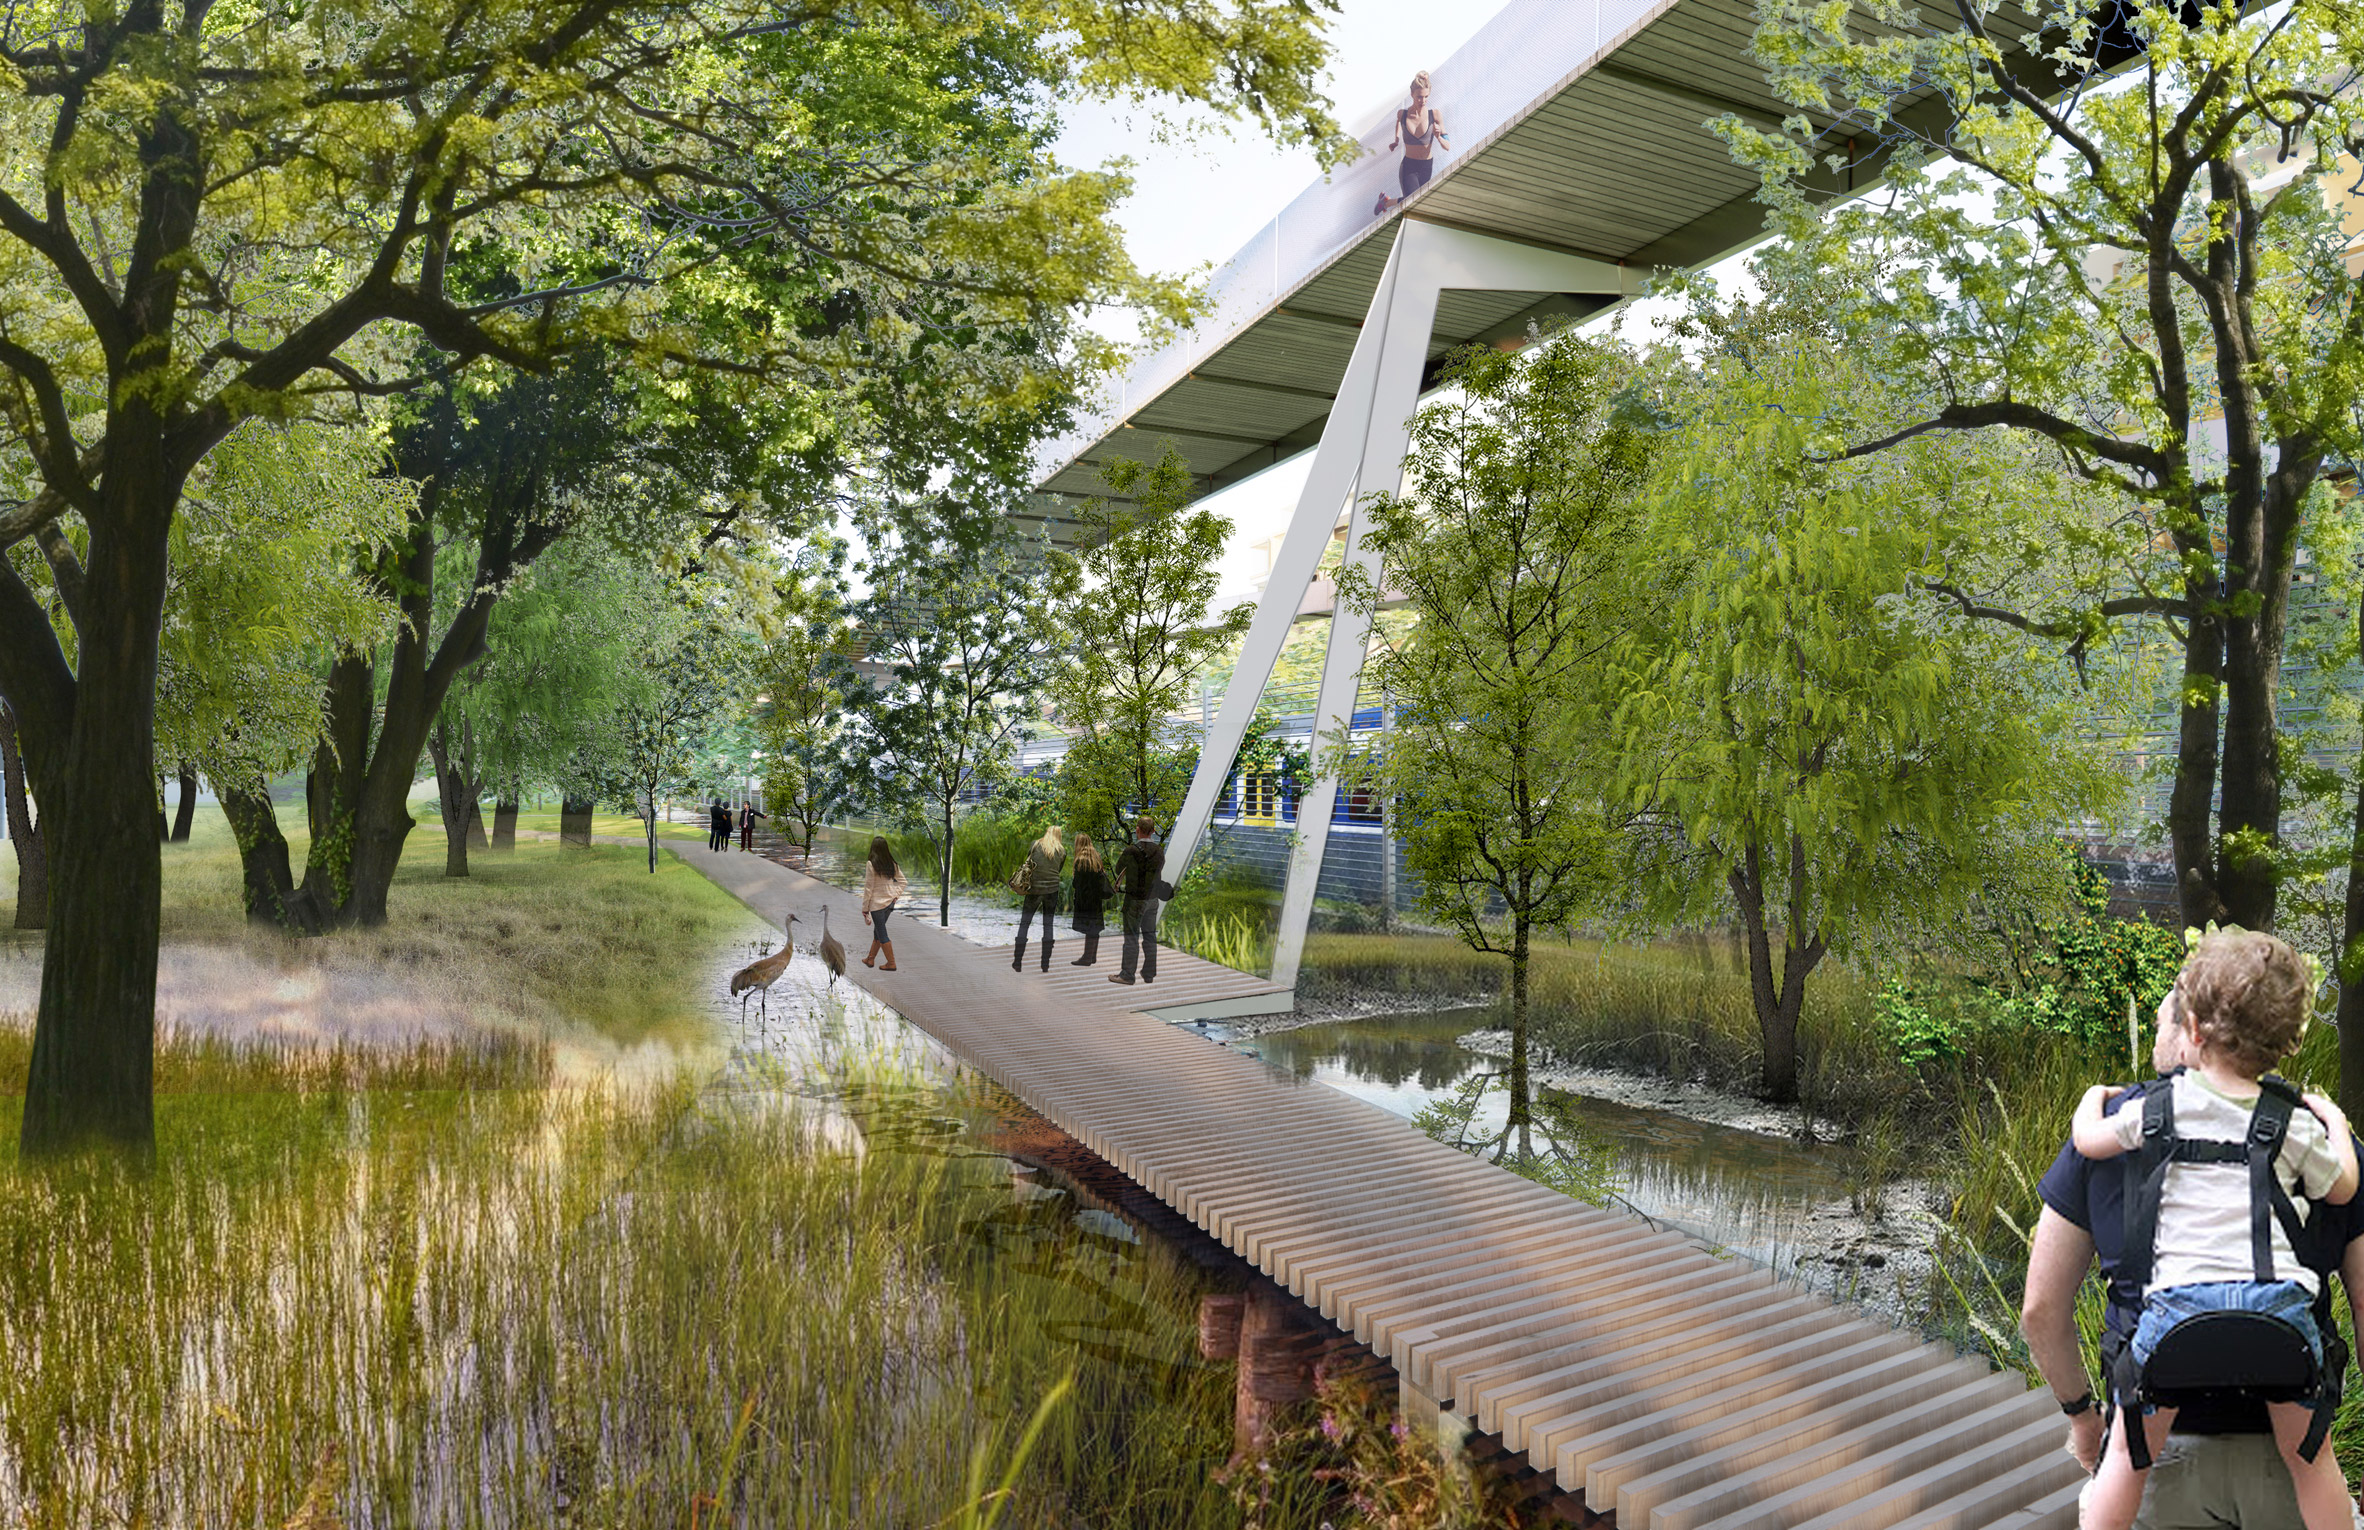 The Parco Romana Green Neighbourhood will have elevated walkways